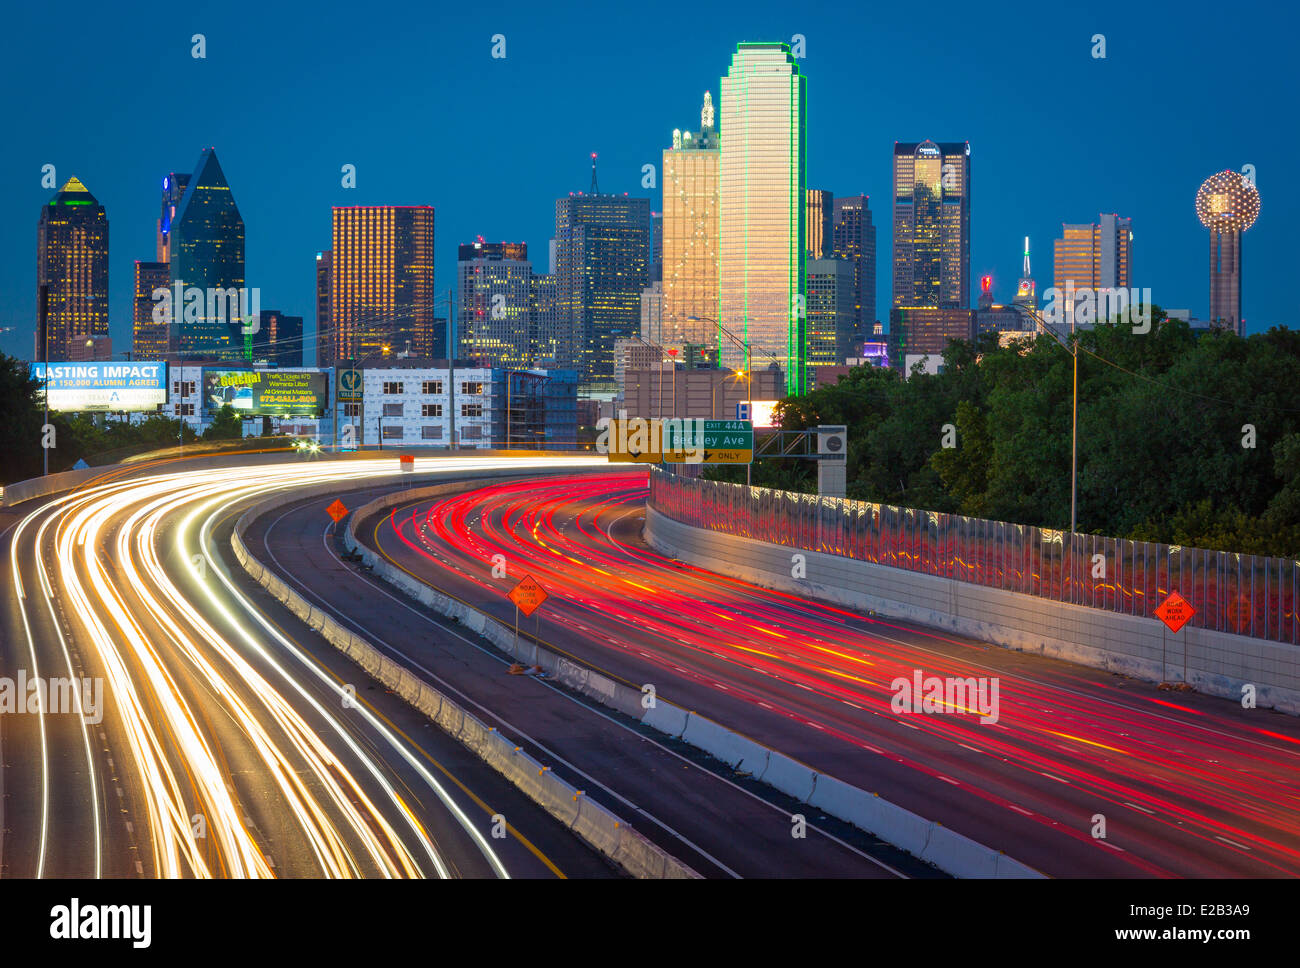 Dallas is the ninth most populous city in the United States of America and the third most populous city in the state - Stock Image